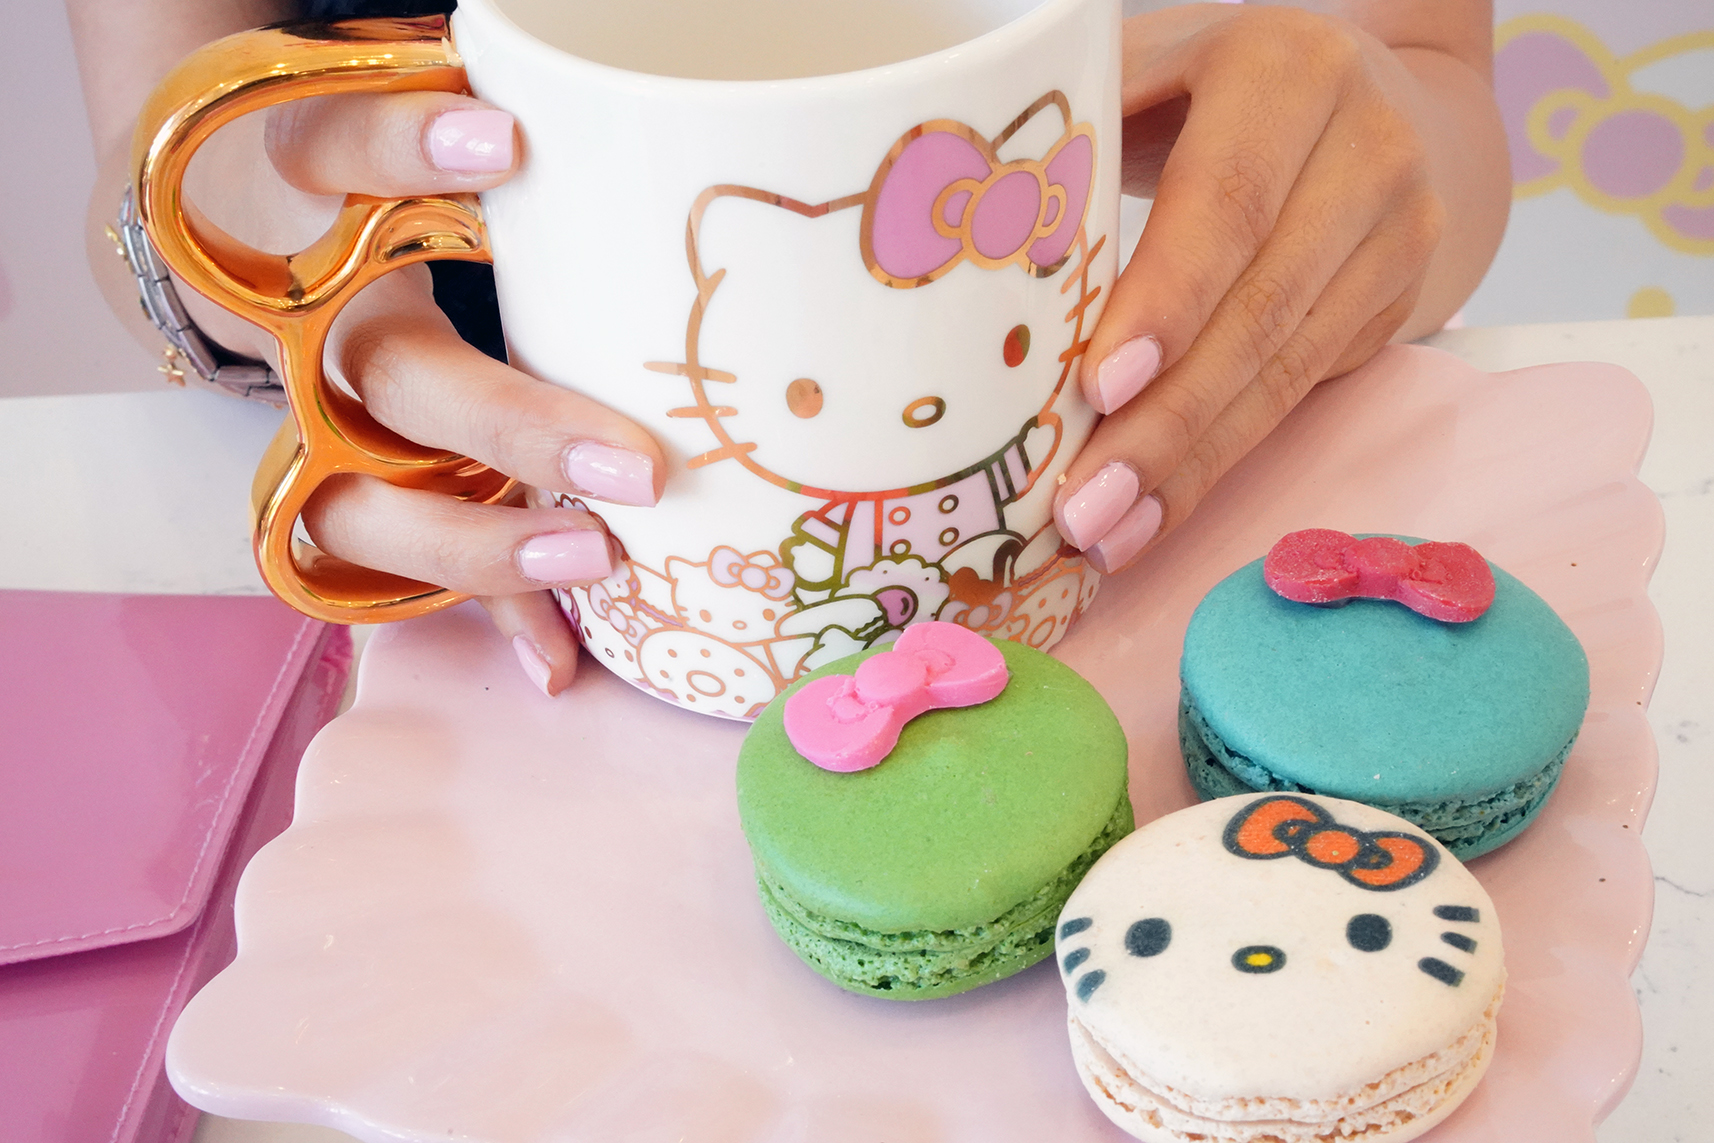 Hello Kitty Cafe Mug, Gluten-Free Hello Kitty Macaroons, NCLA Pastel Dream Pink Barbie Nail Polish